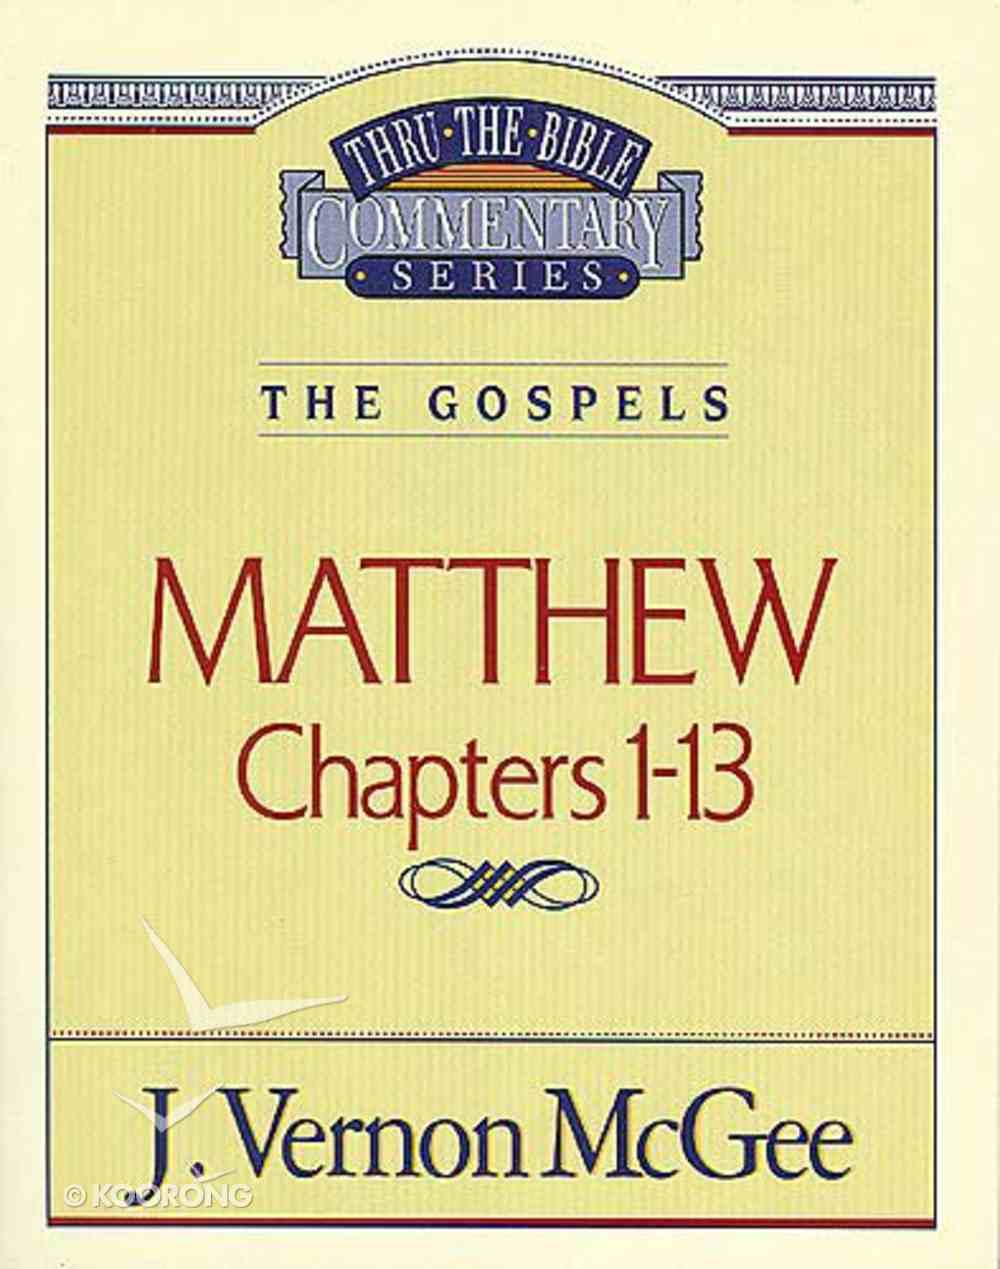 Thru the Bible NT #34: Matthew (Volume 1) (#34 in Thru The Bible New Testament Series) Paperback